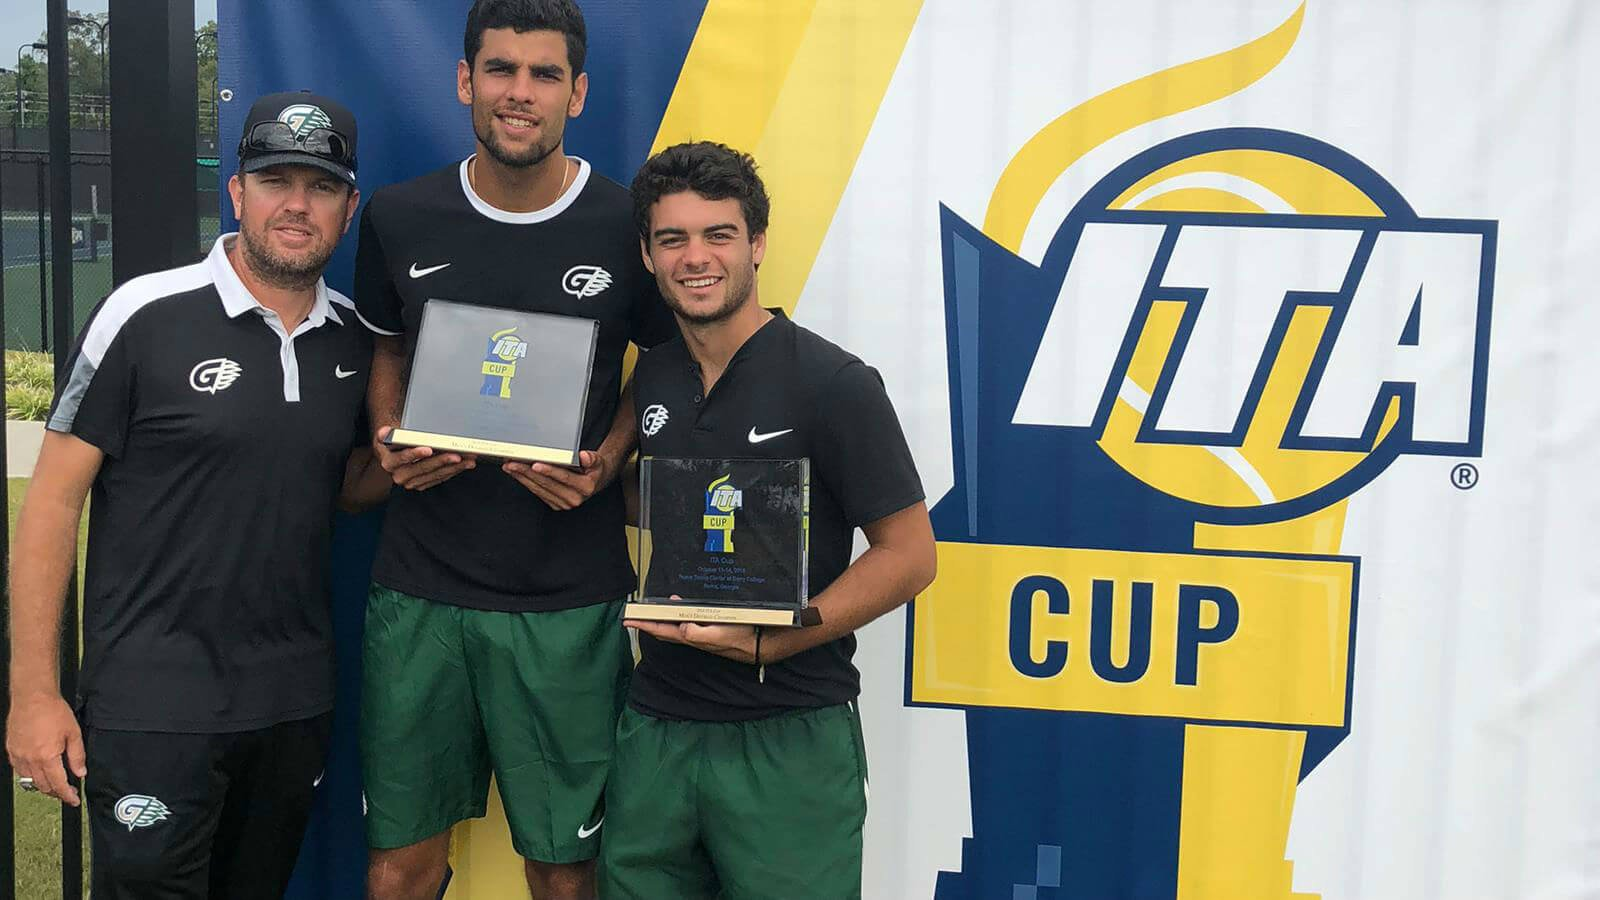 ITA Cup - We Are College Tennis